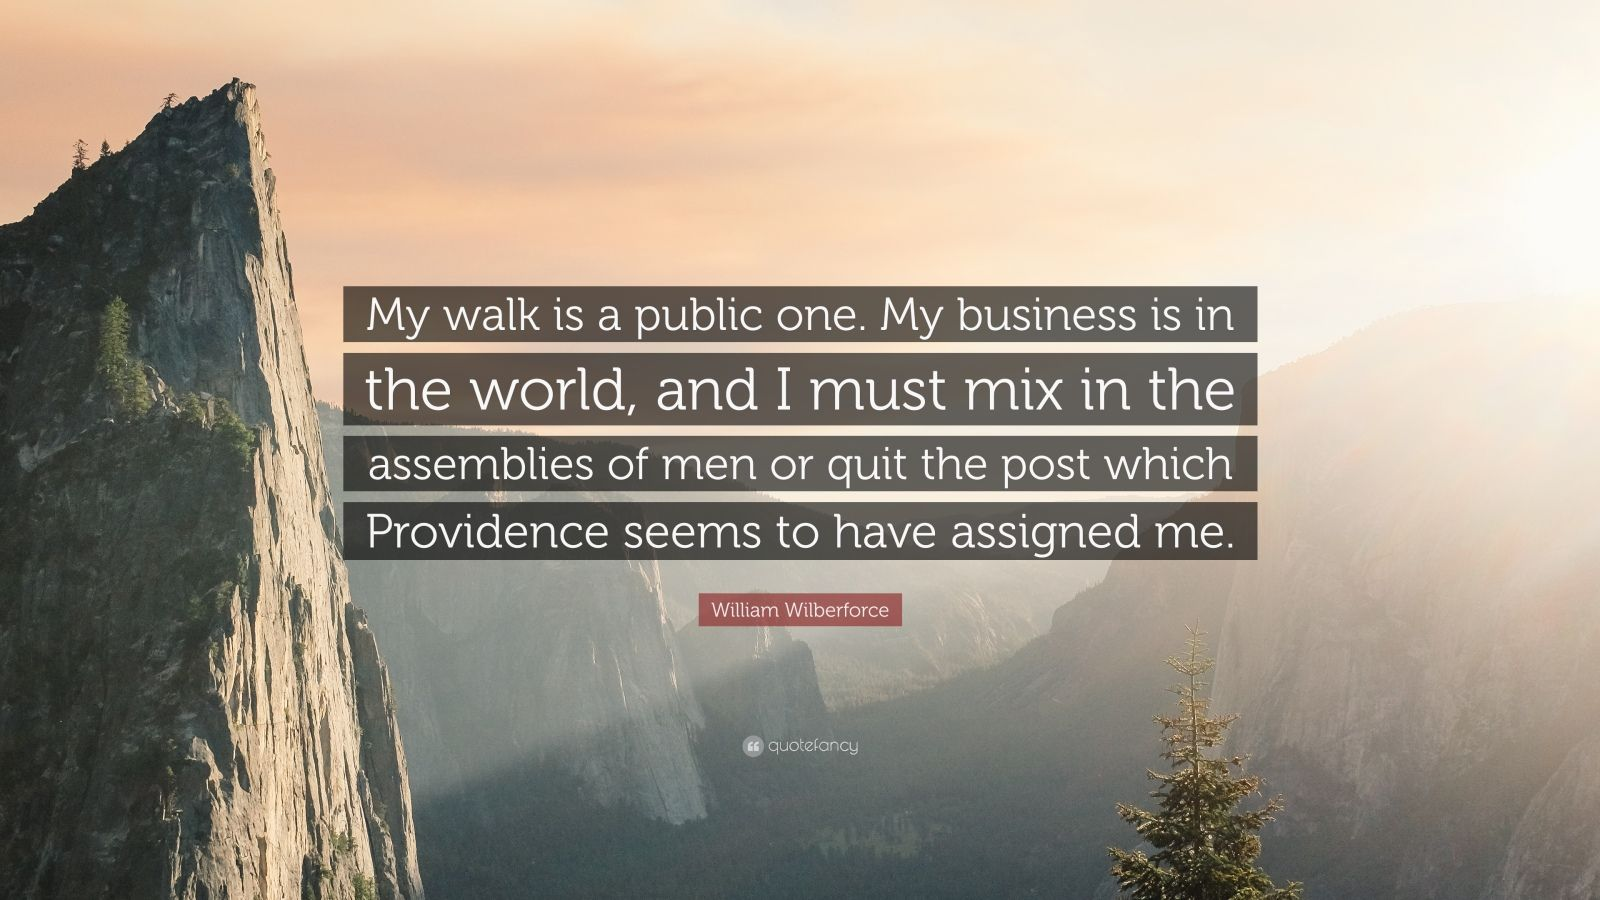 """William Wilberforce Quote: """"My walk is a public one. My business is in the world, and I must mix in the assemblies of men or quit the post which Providence seems to have assigned me."""""""